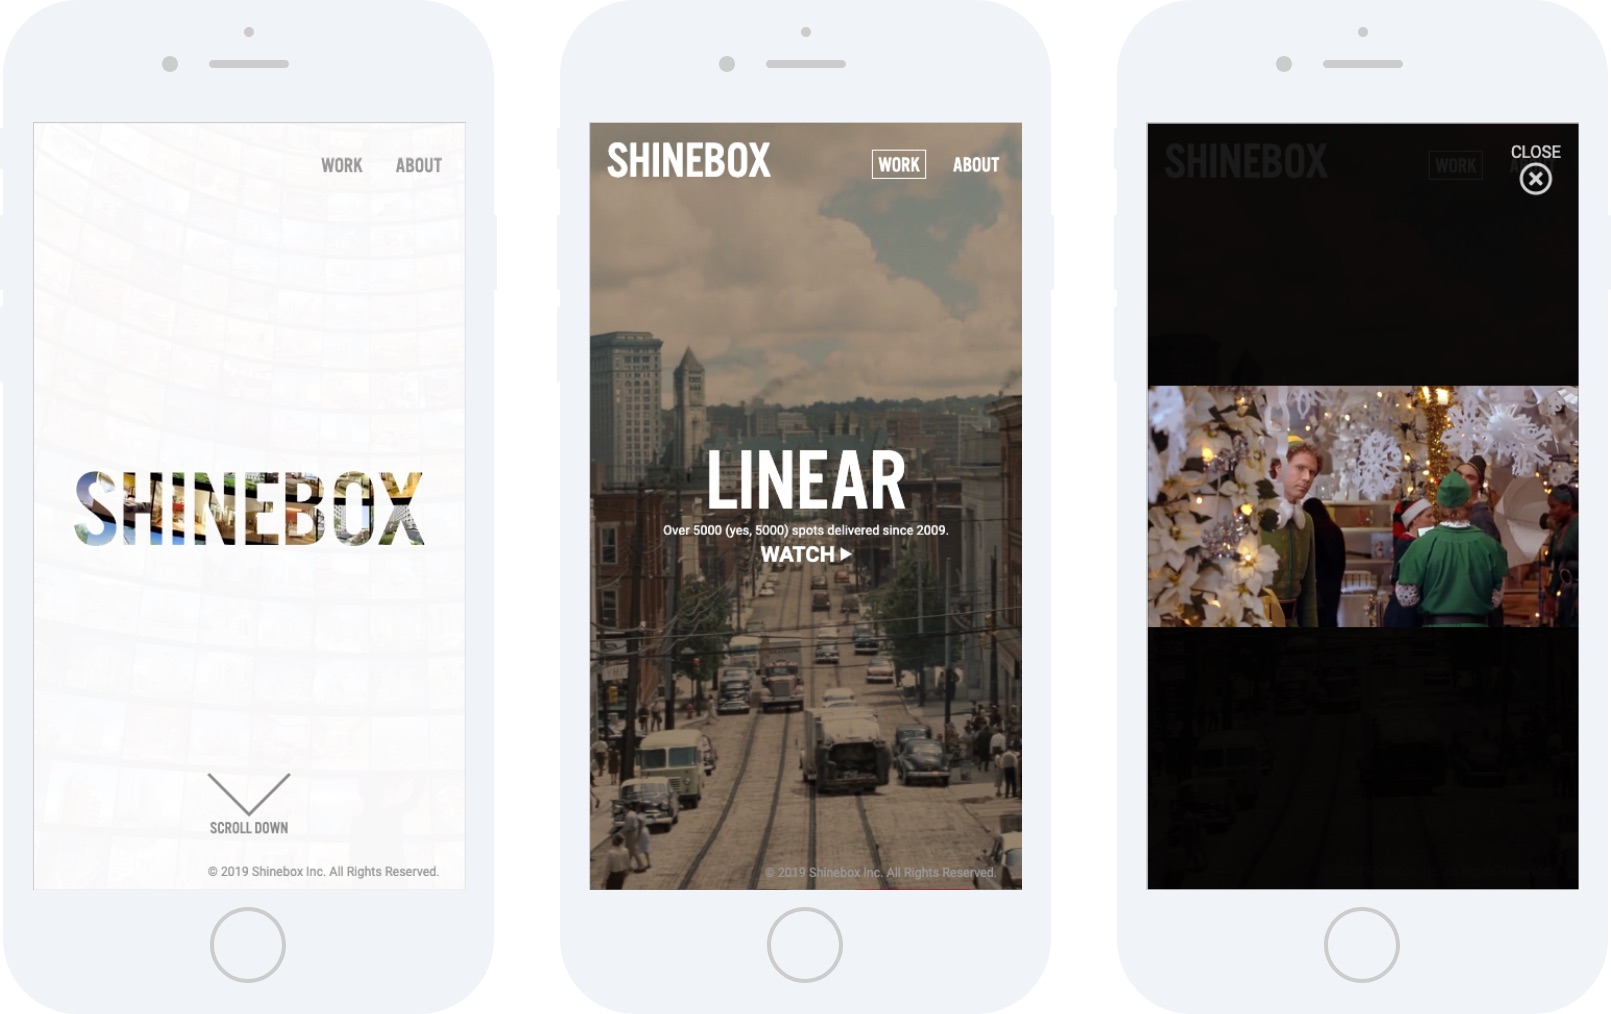 Shinebox 2019 - Mobile